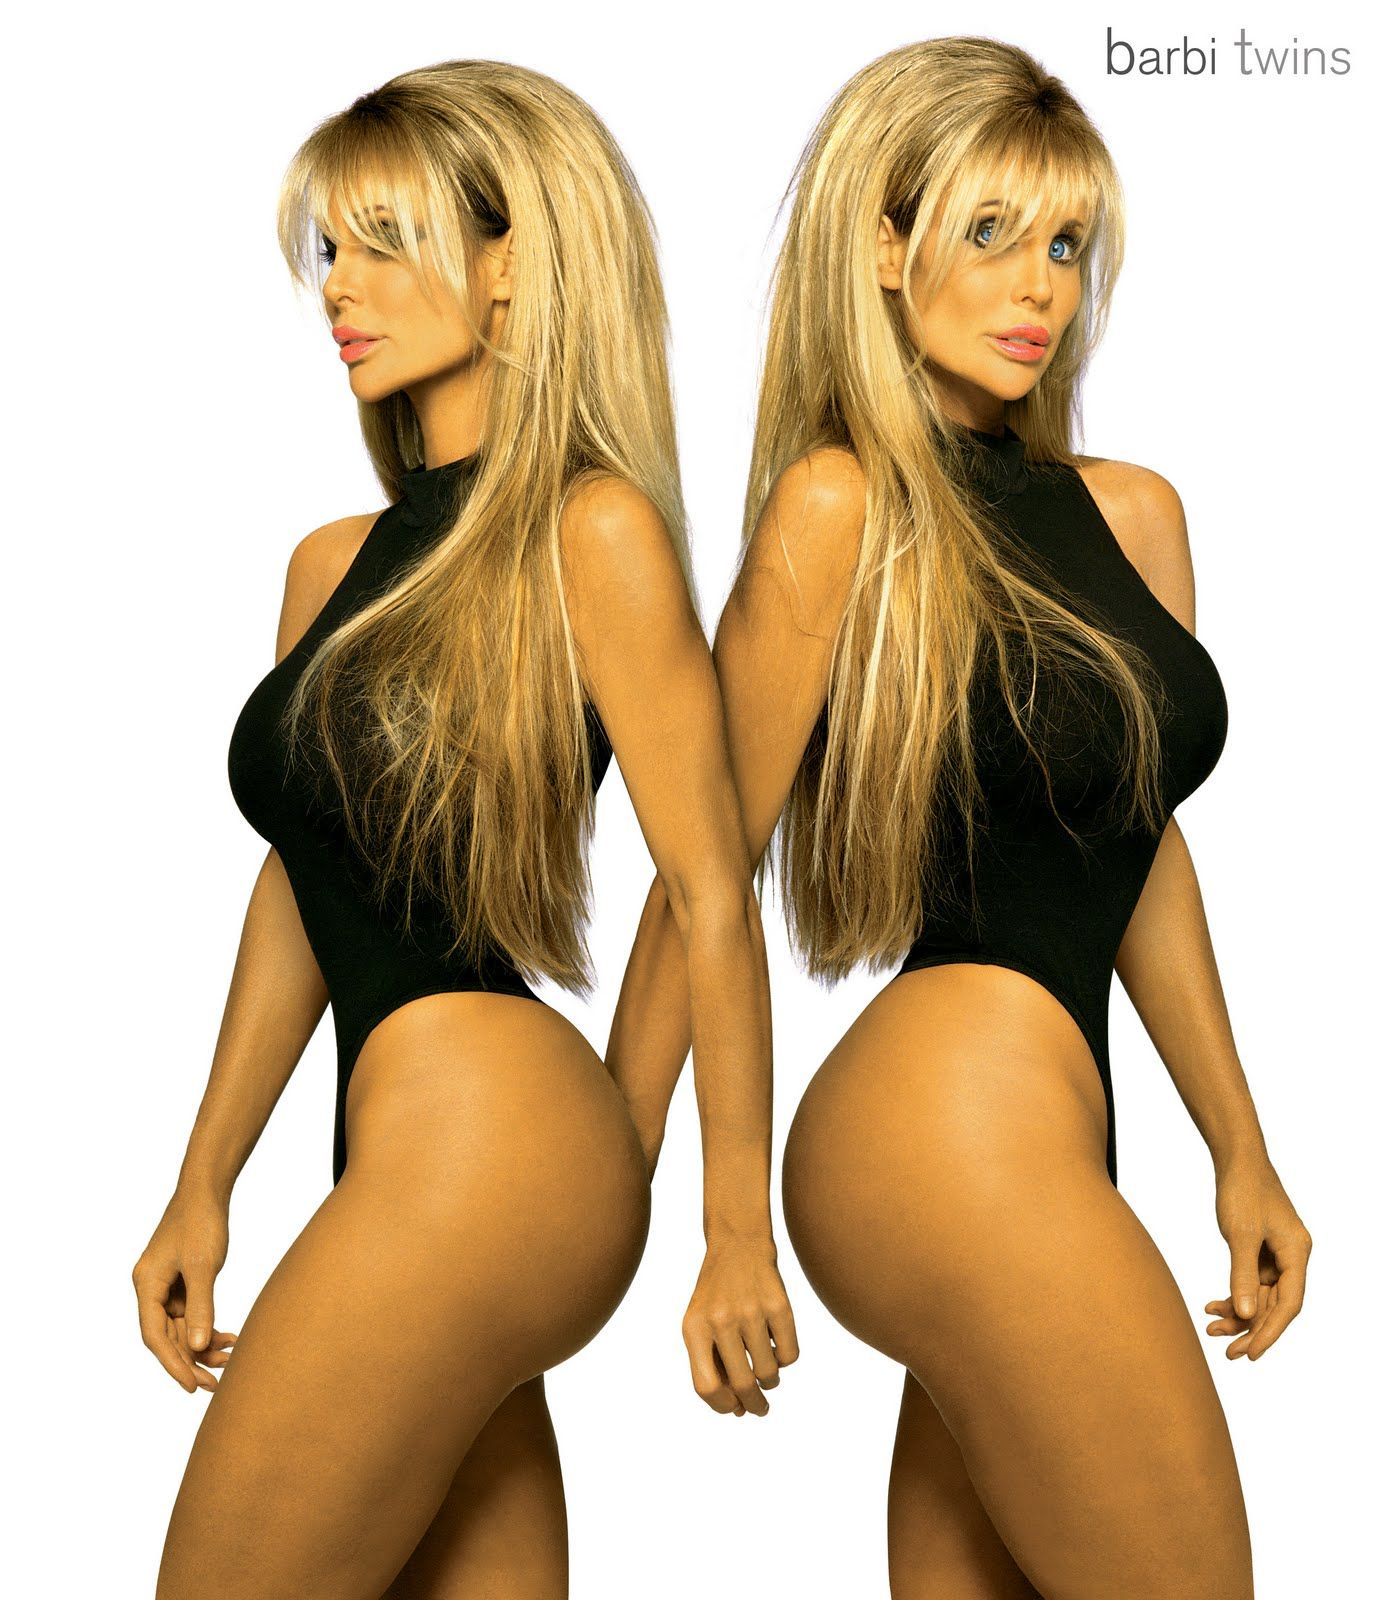 Barbi twins erotic photos